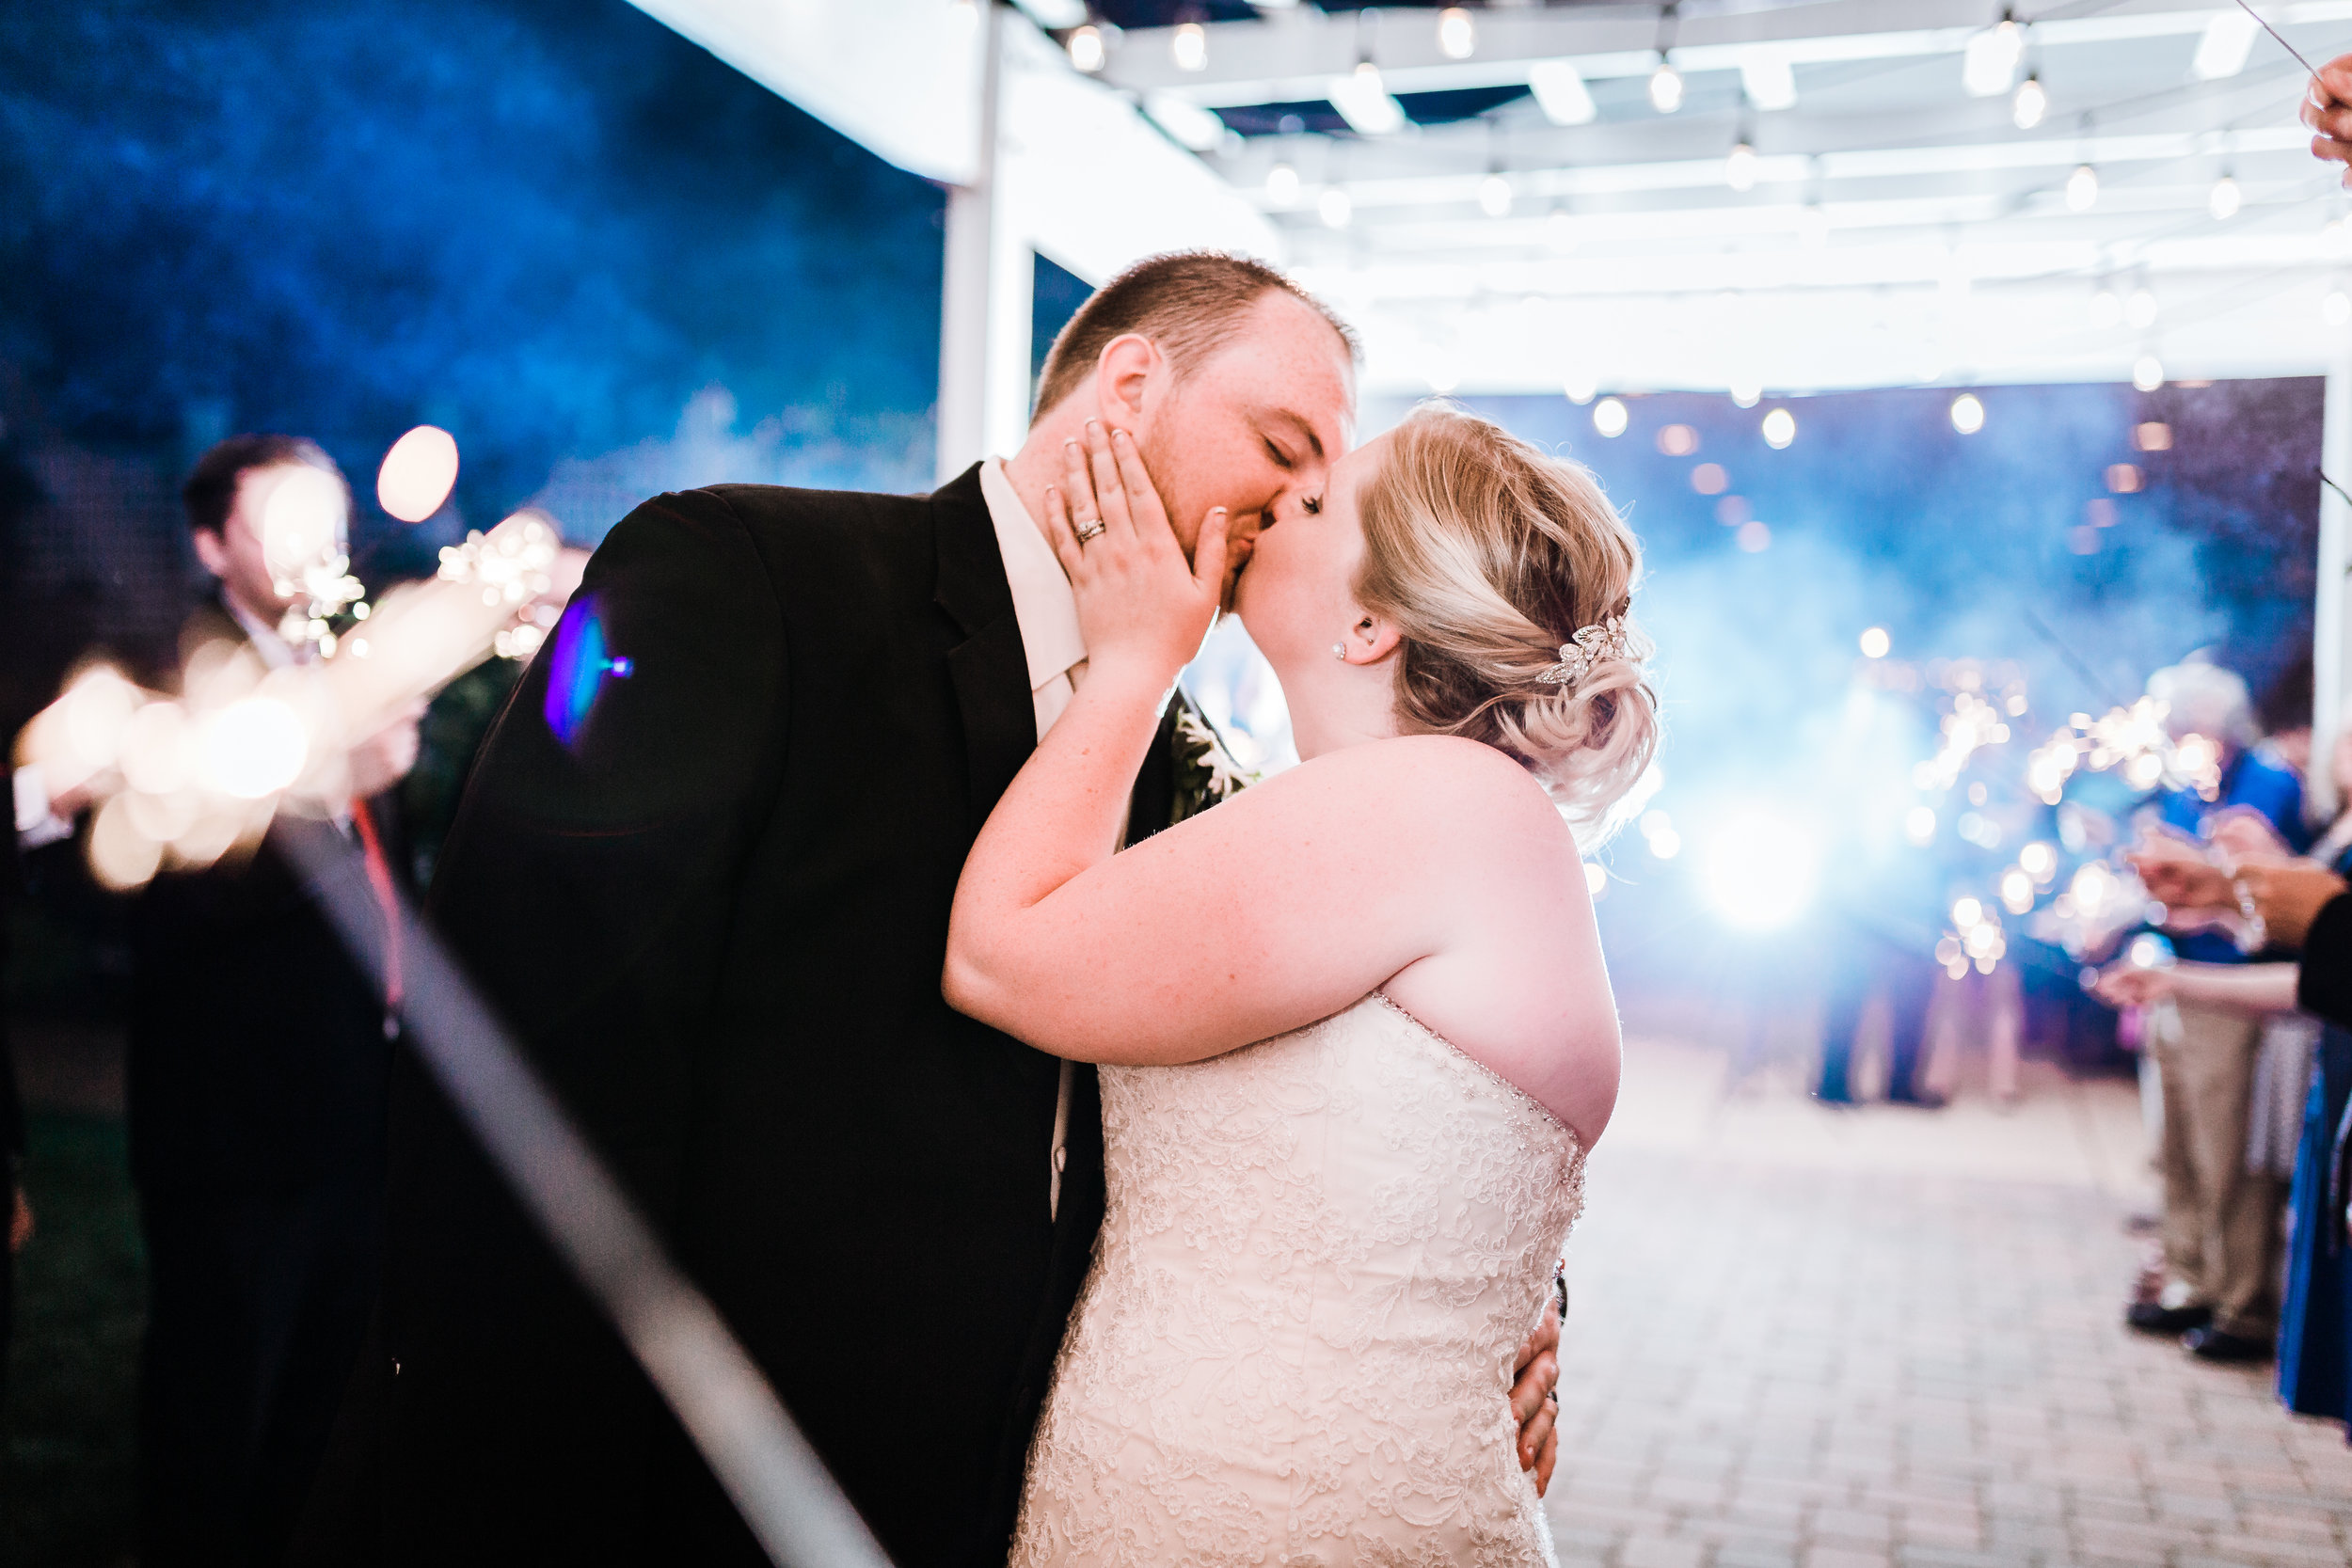 romantic sparkler exit at kurtz's beach in pasadena, maryland - best maryland wedding photographer and cinematographer - husband and wife team